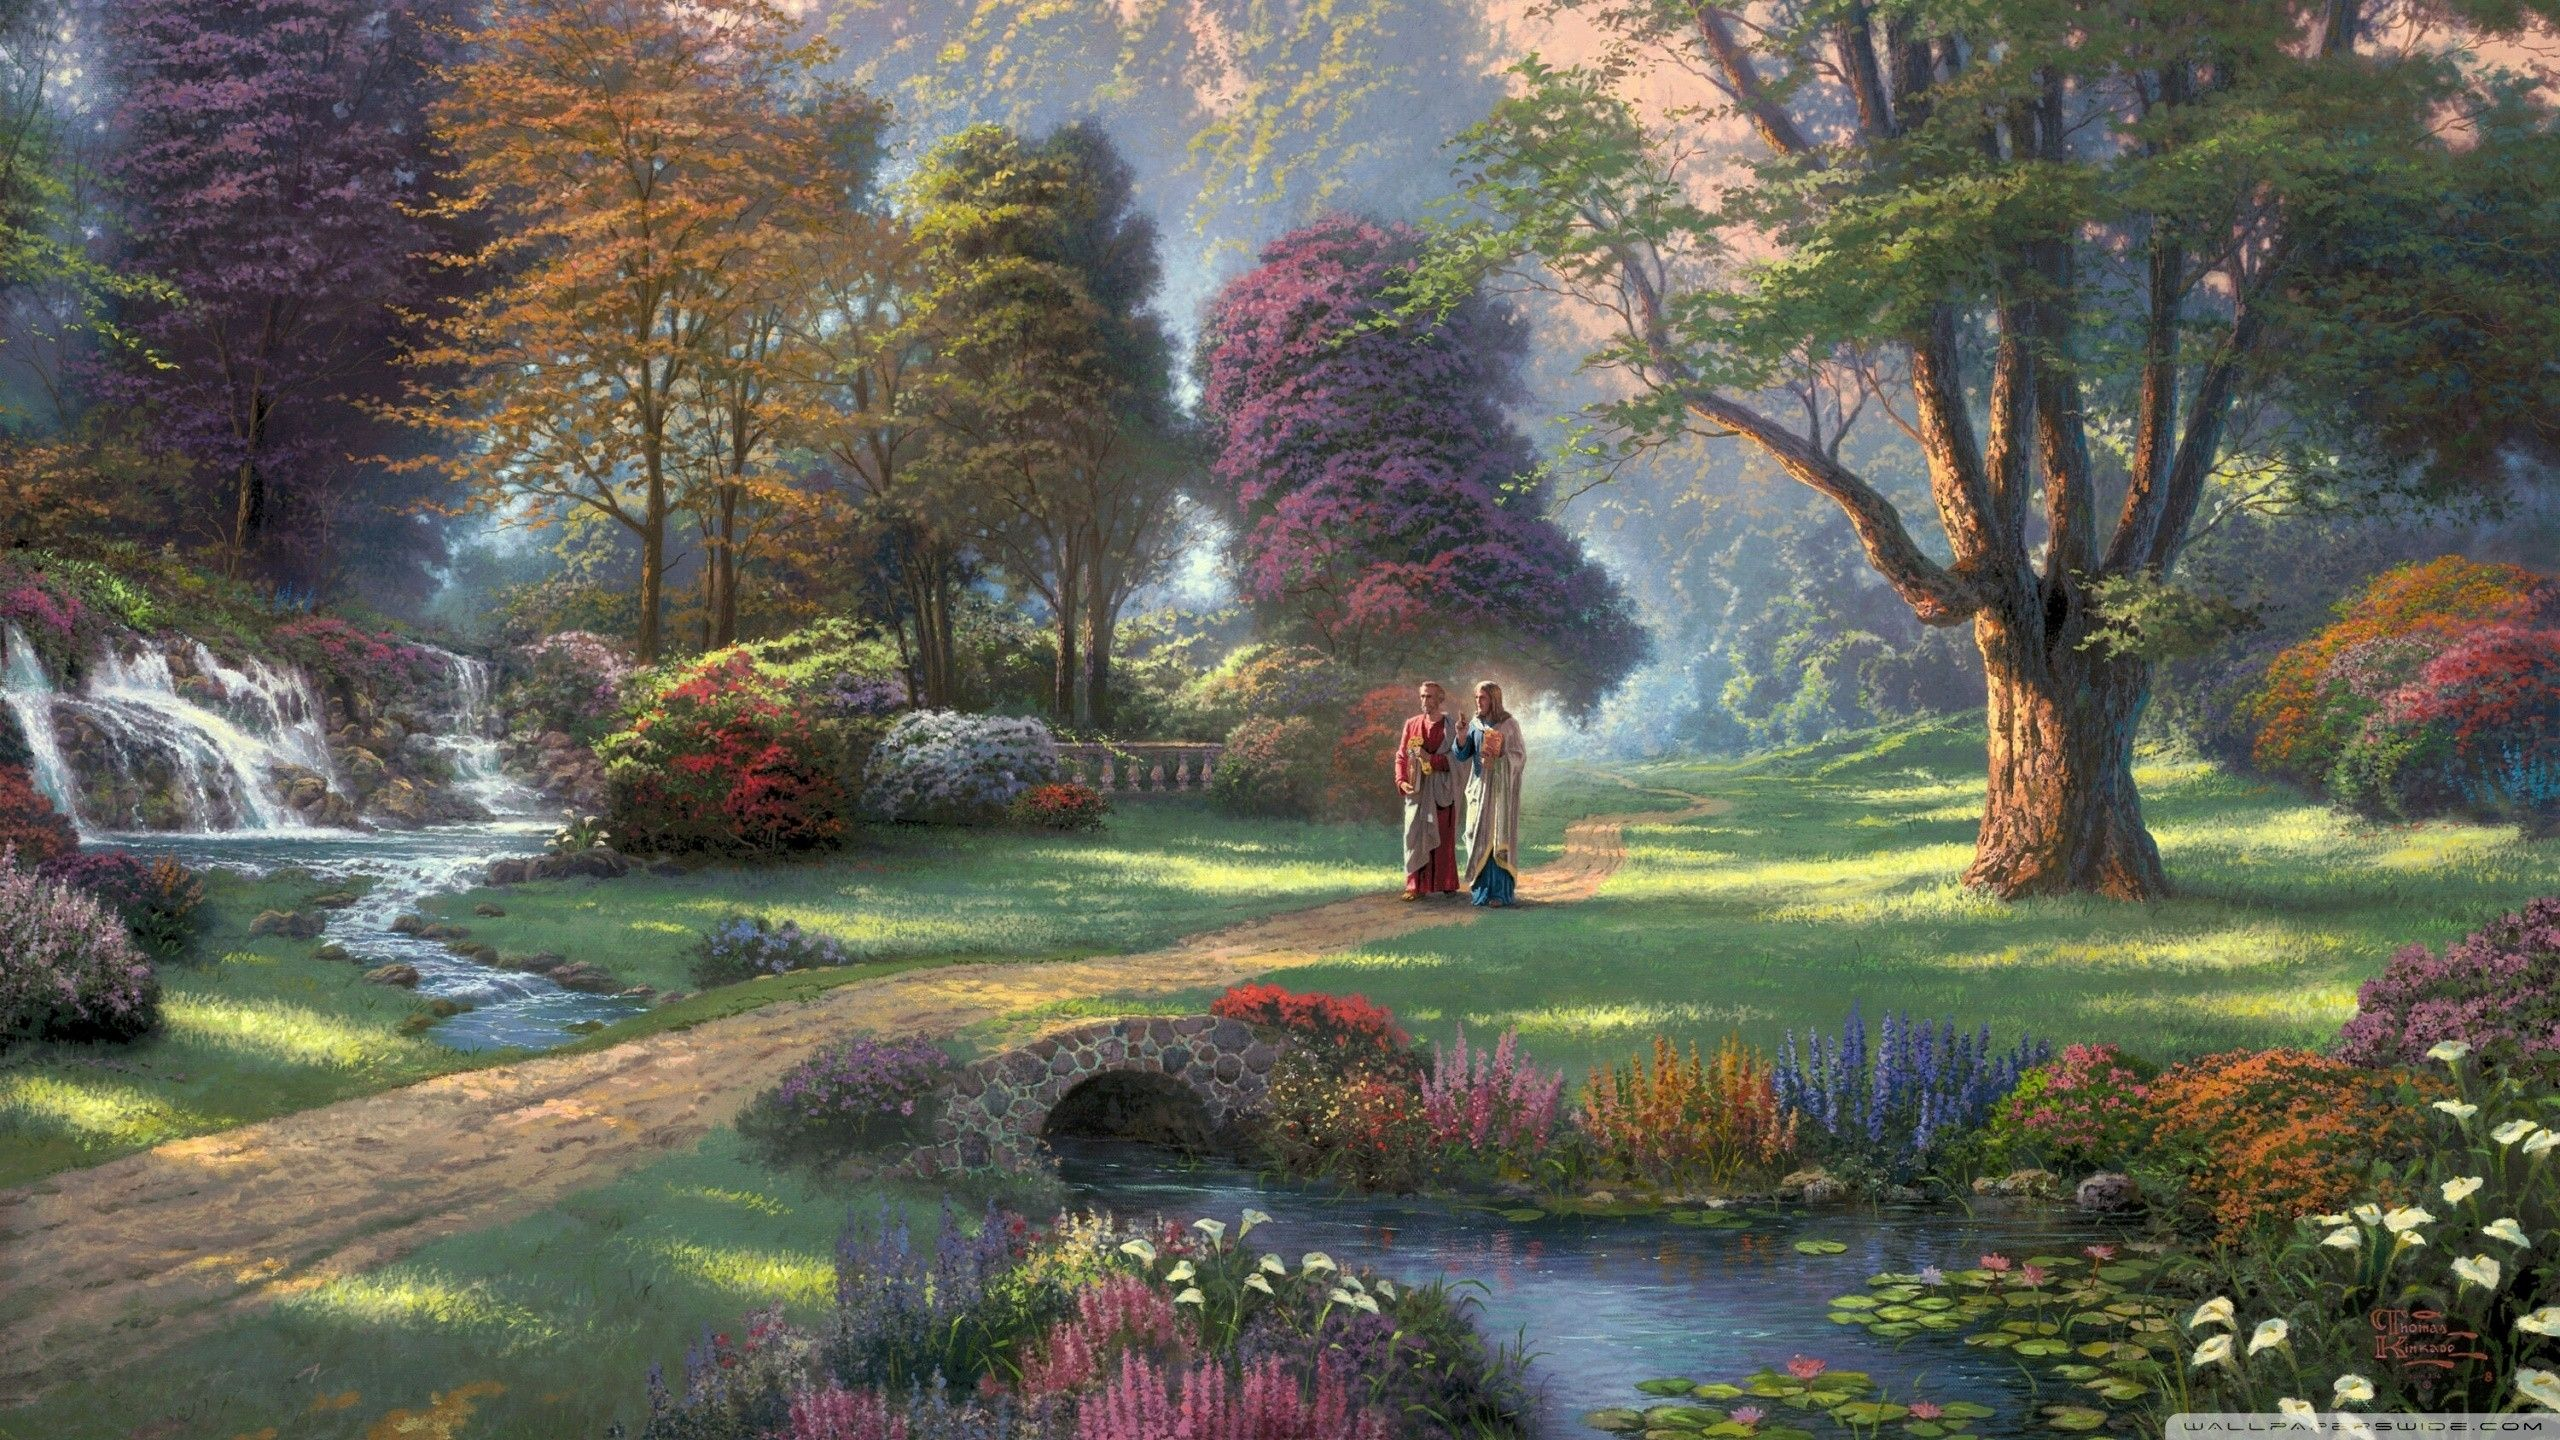 Thomas Kinkade Jesus 2560x1440 Wallpaper Wallpaper Hd Thomas